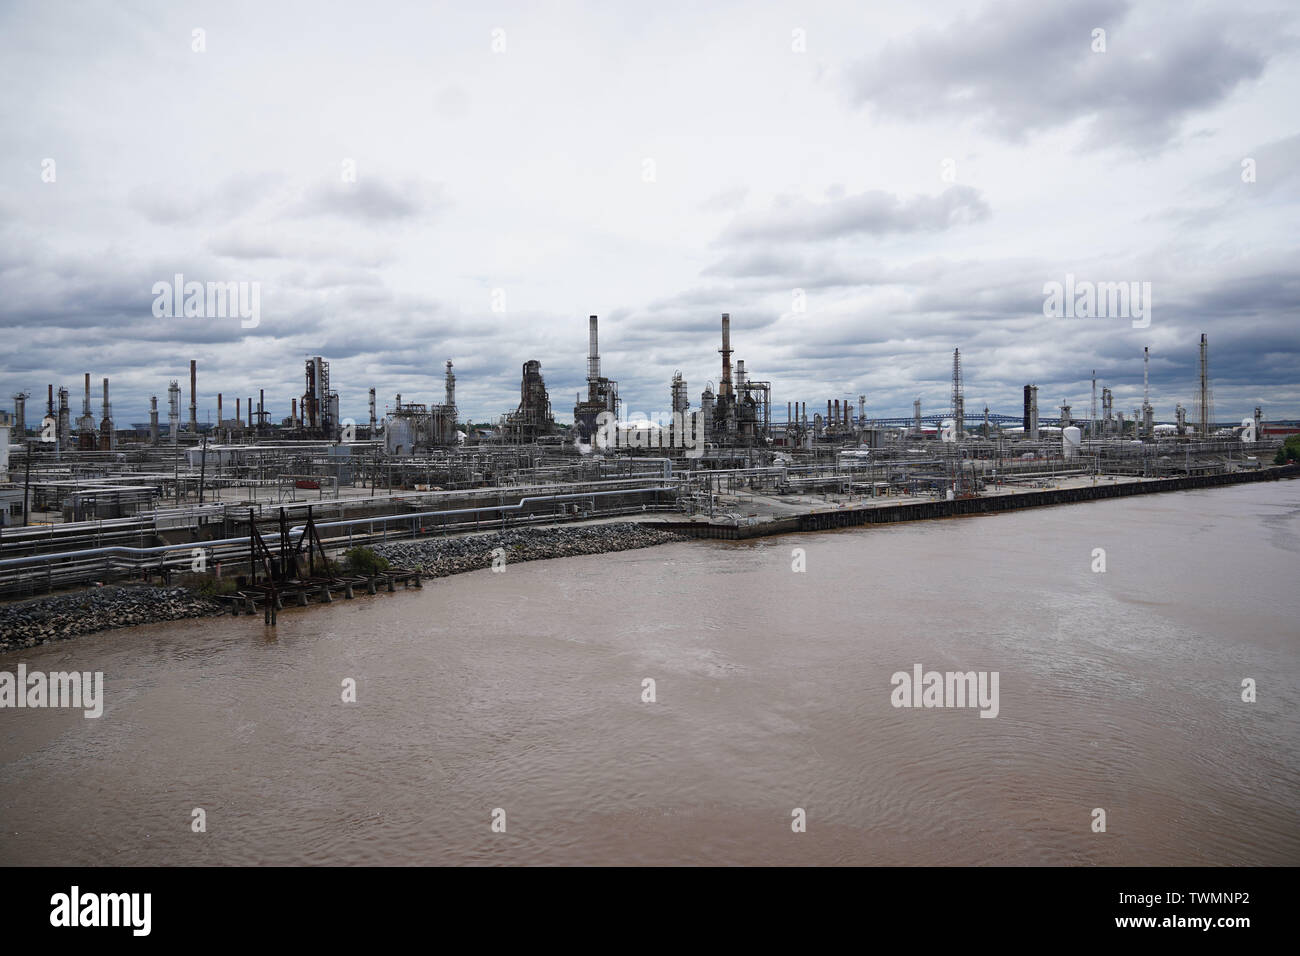 Philadelphia, USA. 21st June, 2019. Photo taken on June 21, 2019 shows the Philadelphia Energy Solutions refinery after the fire in Philadelphia, Pennsylvania, the United States. Firefighters have contained a massive fire erupting early Friday morning at the Philadelphia Energy Solutions refinery in Philadelphia, local media reported, citing the authorities. Credit: Liu Jie/Xinhua/Alamy Live News - Stock Image